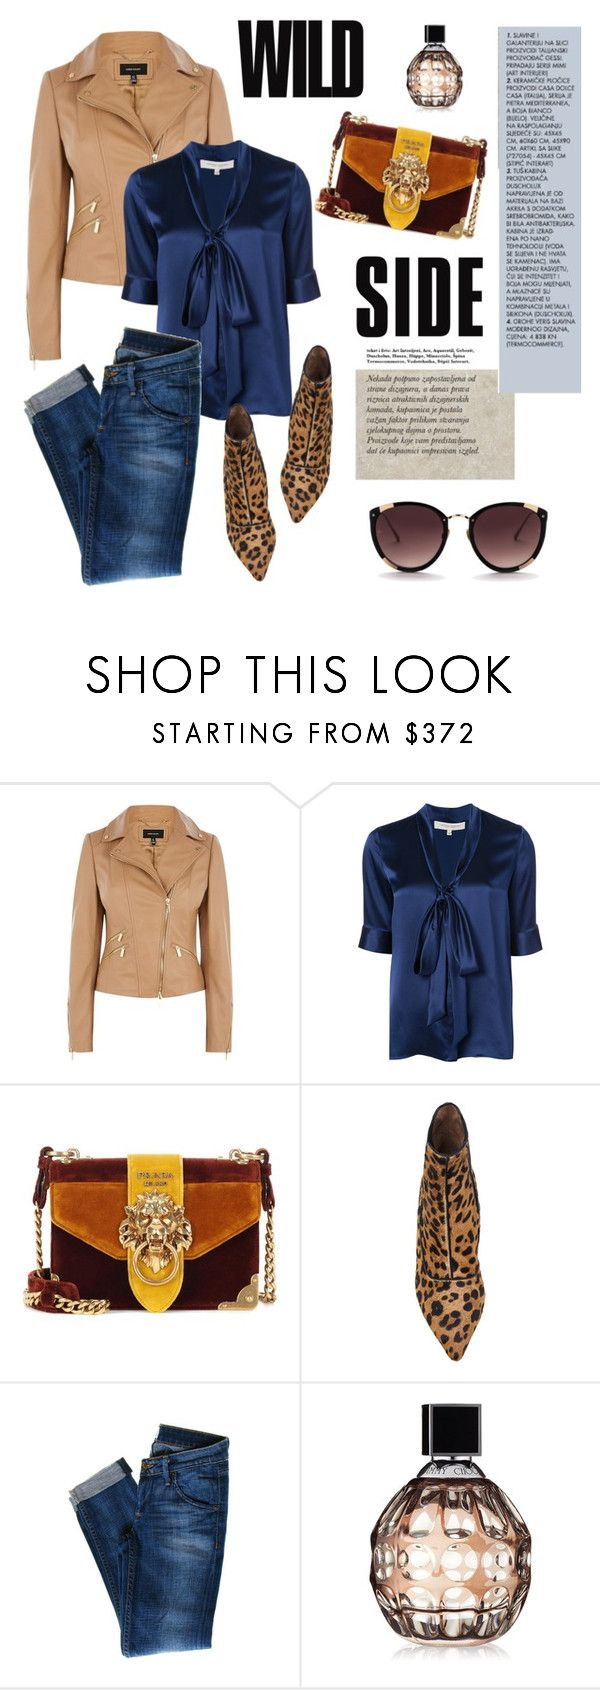 """""""Untitled #2305"""" by ladydelicat ❤ liked on Polyvore featuring Karen Millen, Carolina Herrera, Prada, Tabitha Simmons, Hudson Jeans, Jimmy Choo and Rebecca Taylor"""